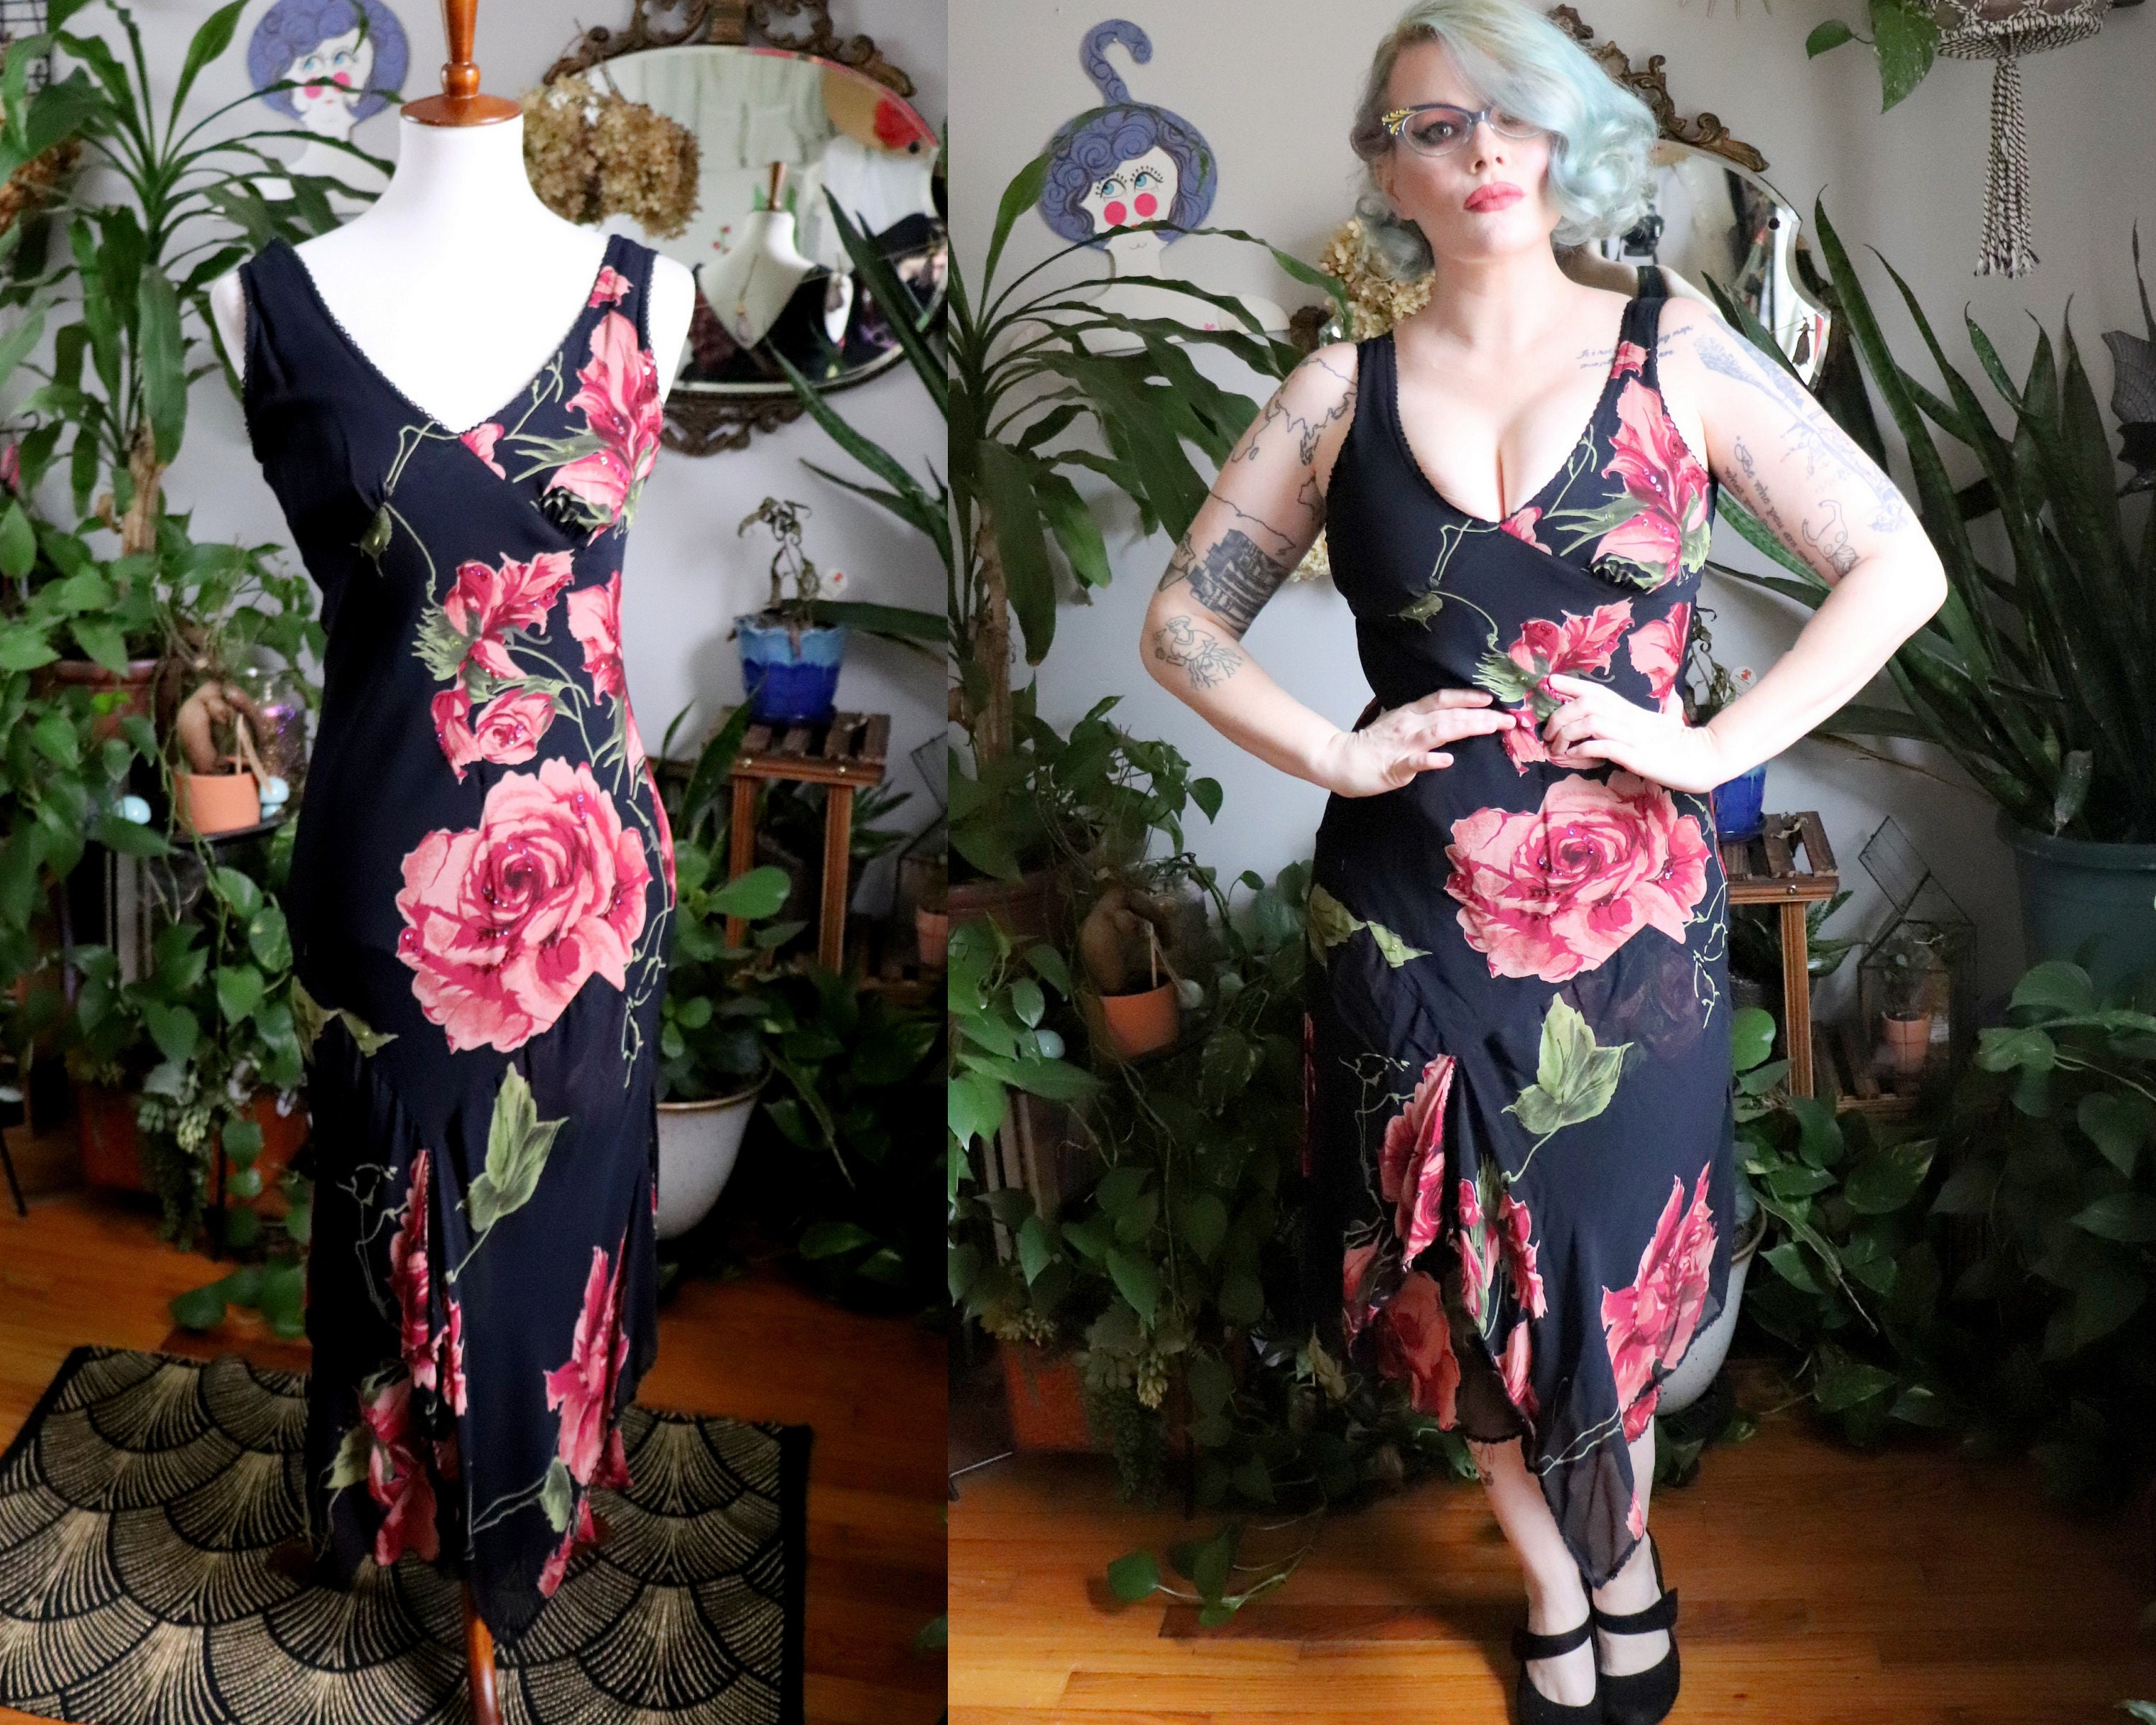 Vintage Scarf Styles -1920s to 1960s Brandy Dress  Vintage 1990s Does 1930s Style Black Rayon Chiffon Bias Cut Gown With Lovely Beaded Pink Rose Print  Scarf Hem Xs $0.00 AT vintagedancer.com